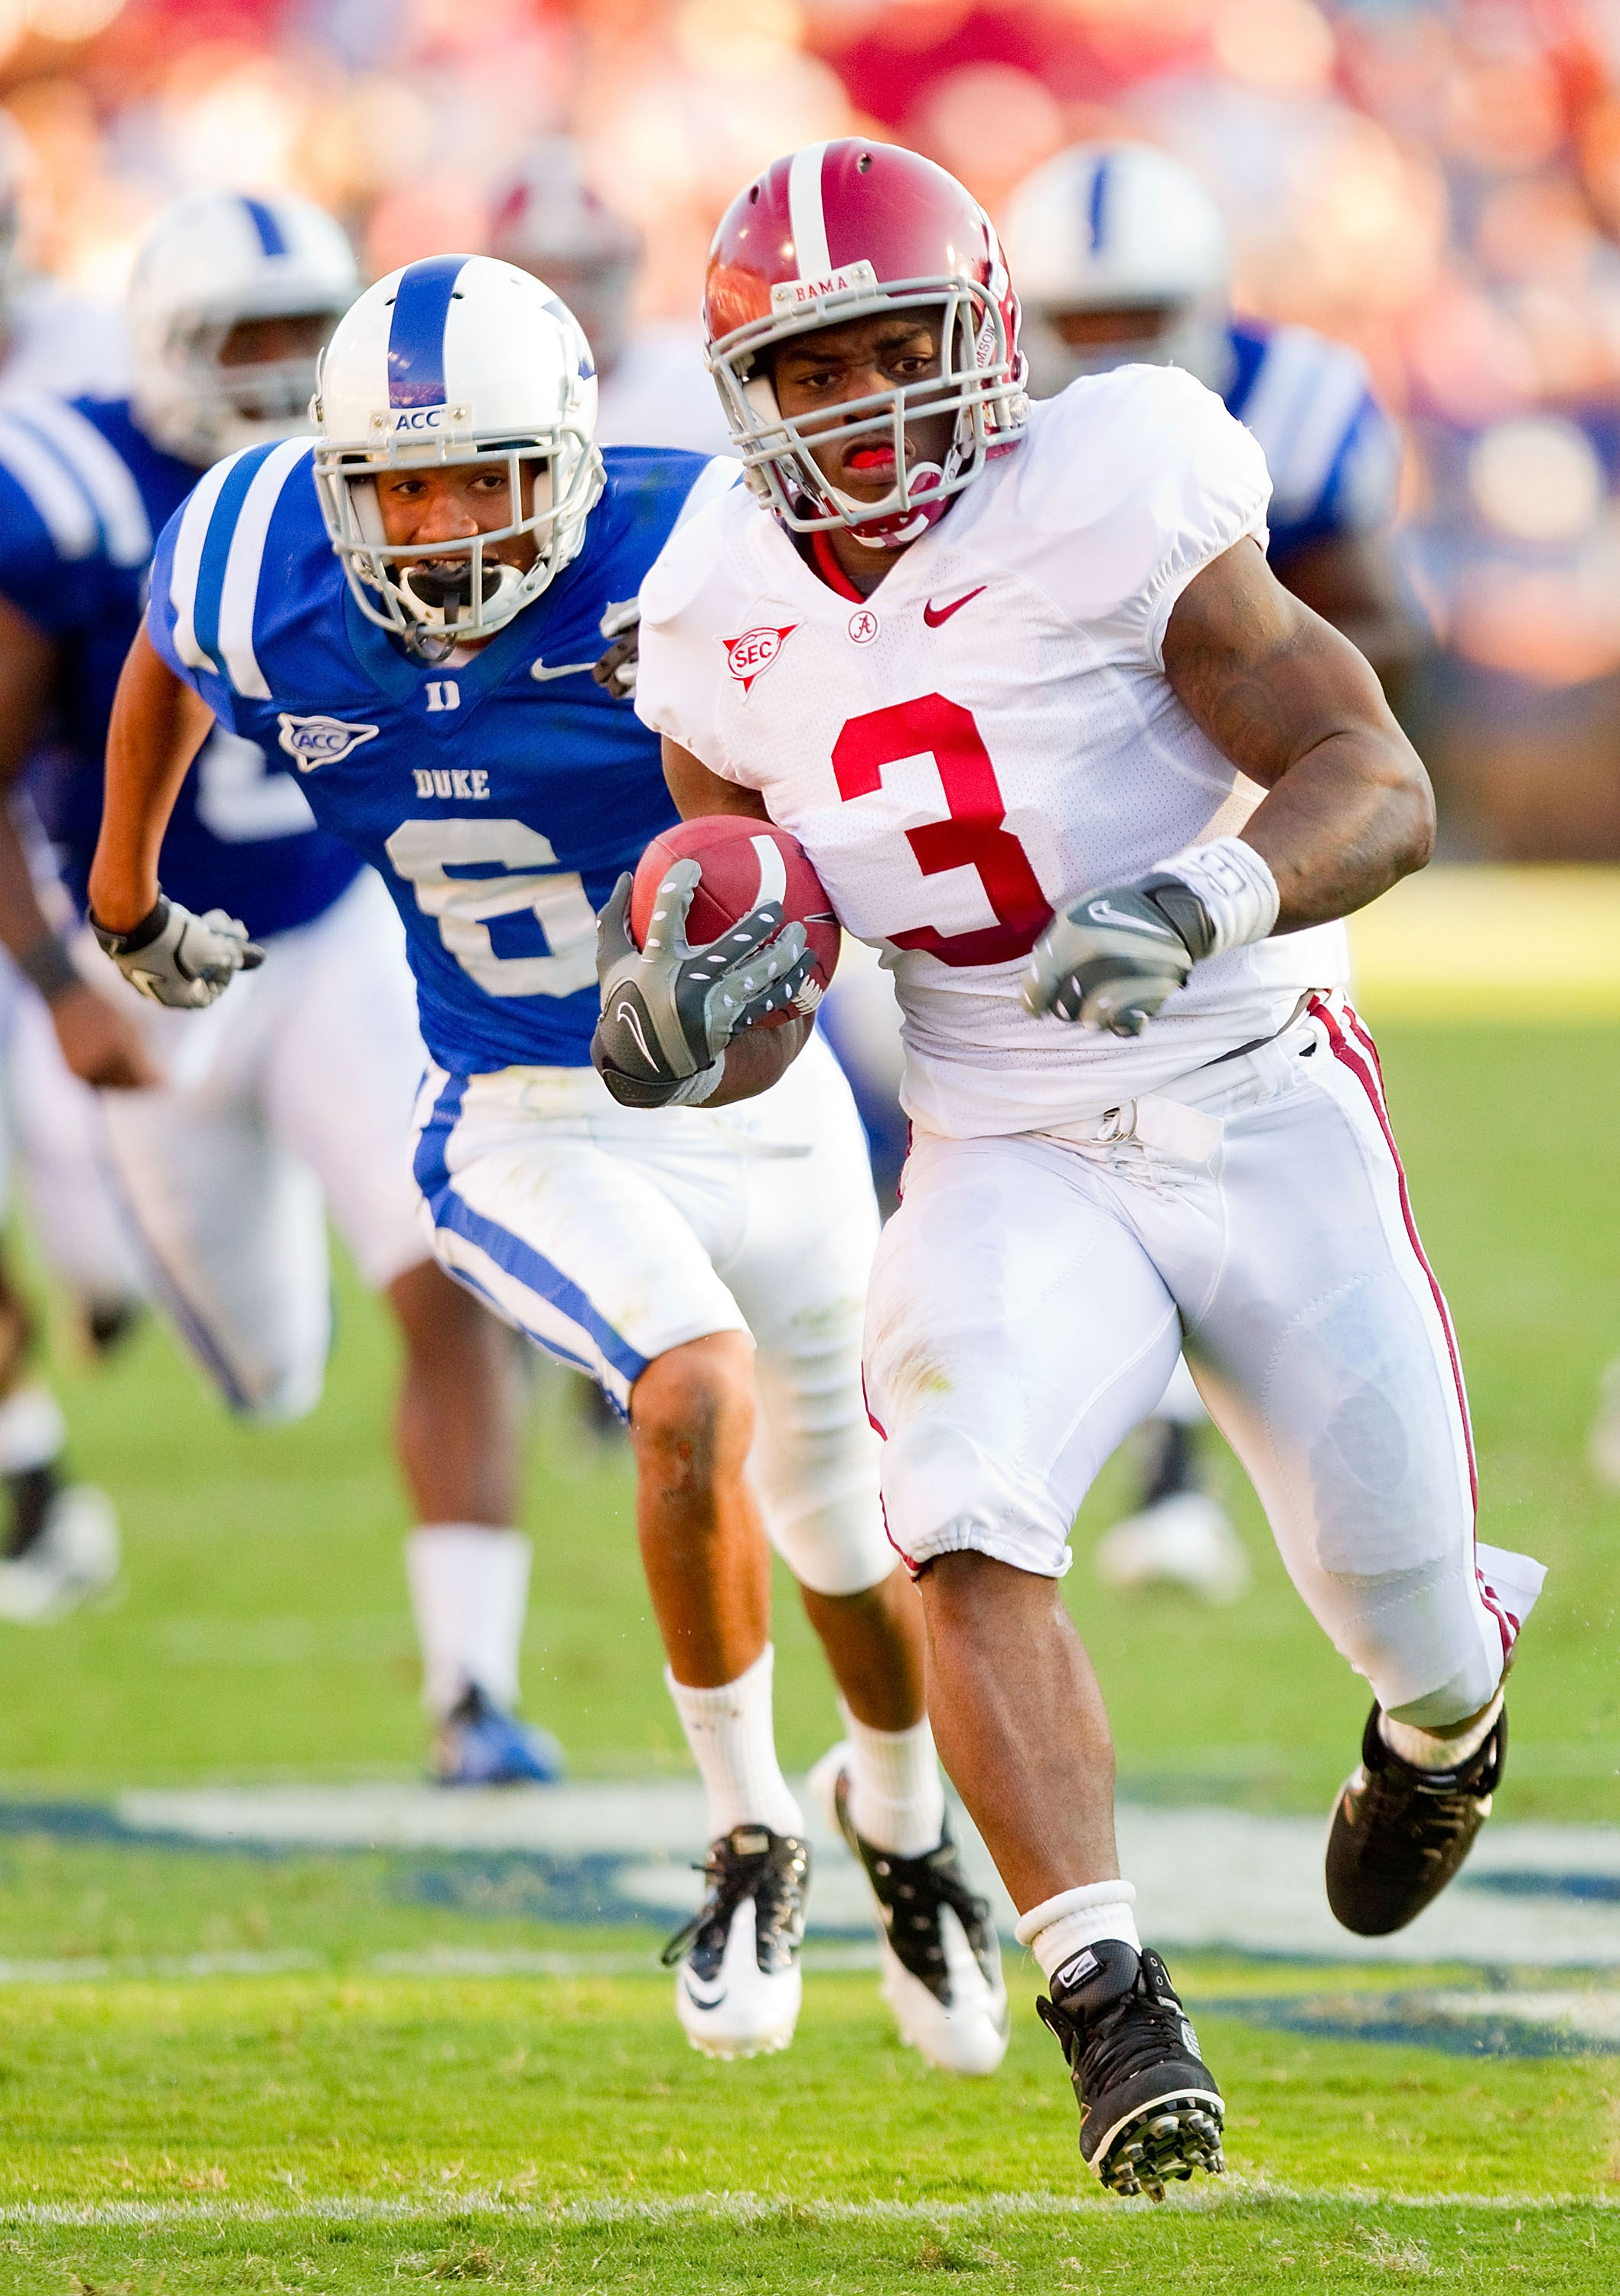 DURHAM, NC - SEPTEMBER 18: Trent Richardson #3 of the Alabama Crimson Tide breaks away from Ross Cockrell #6 of the Duke Blue Devils for a 45-yard touchdown run at Wallace Wade Stadium on September 18, 2010 in Durham, North Carolina.  The Crimson Tide def